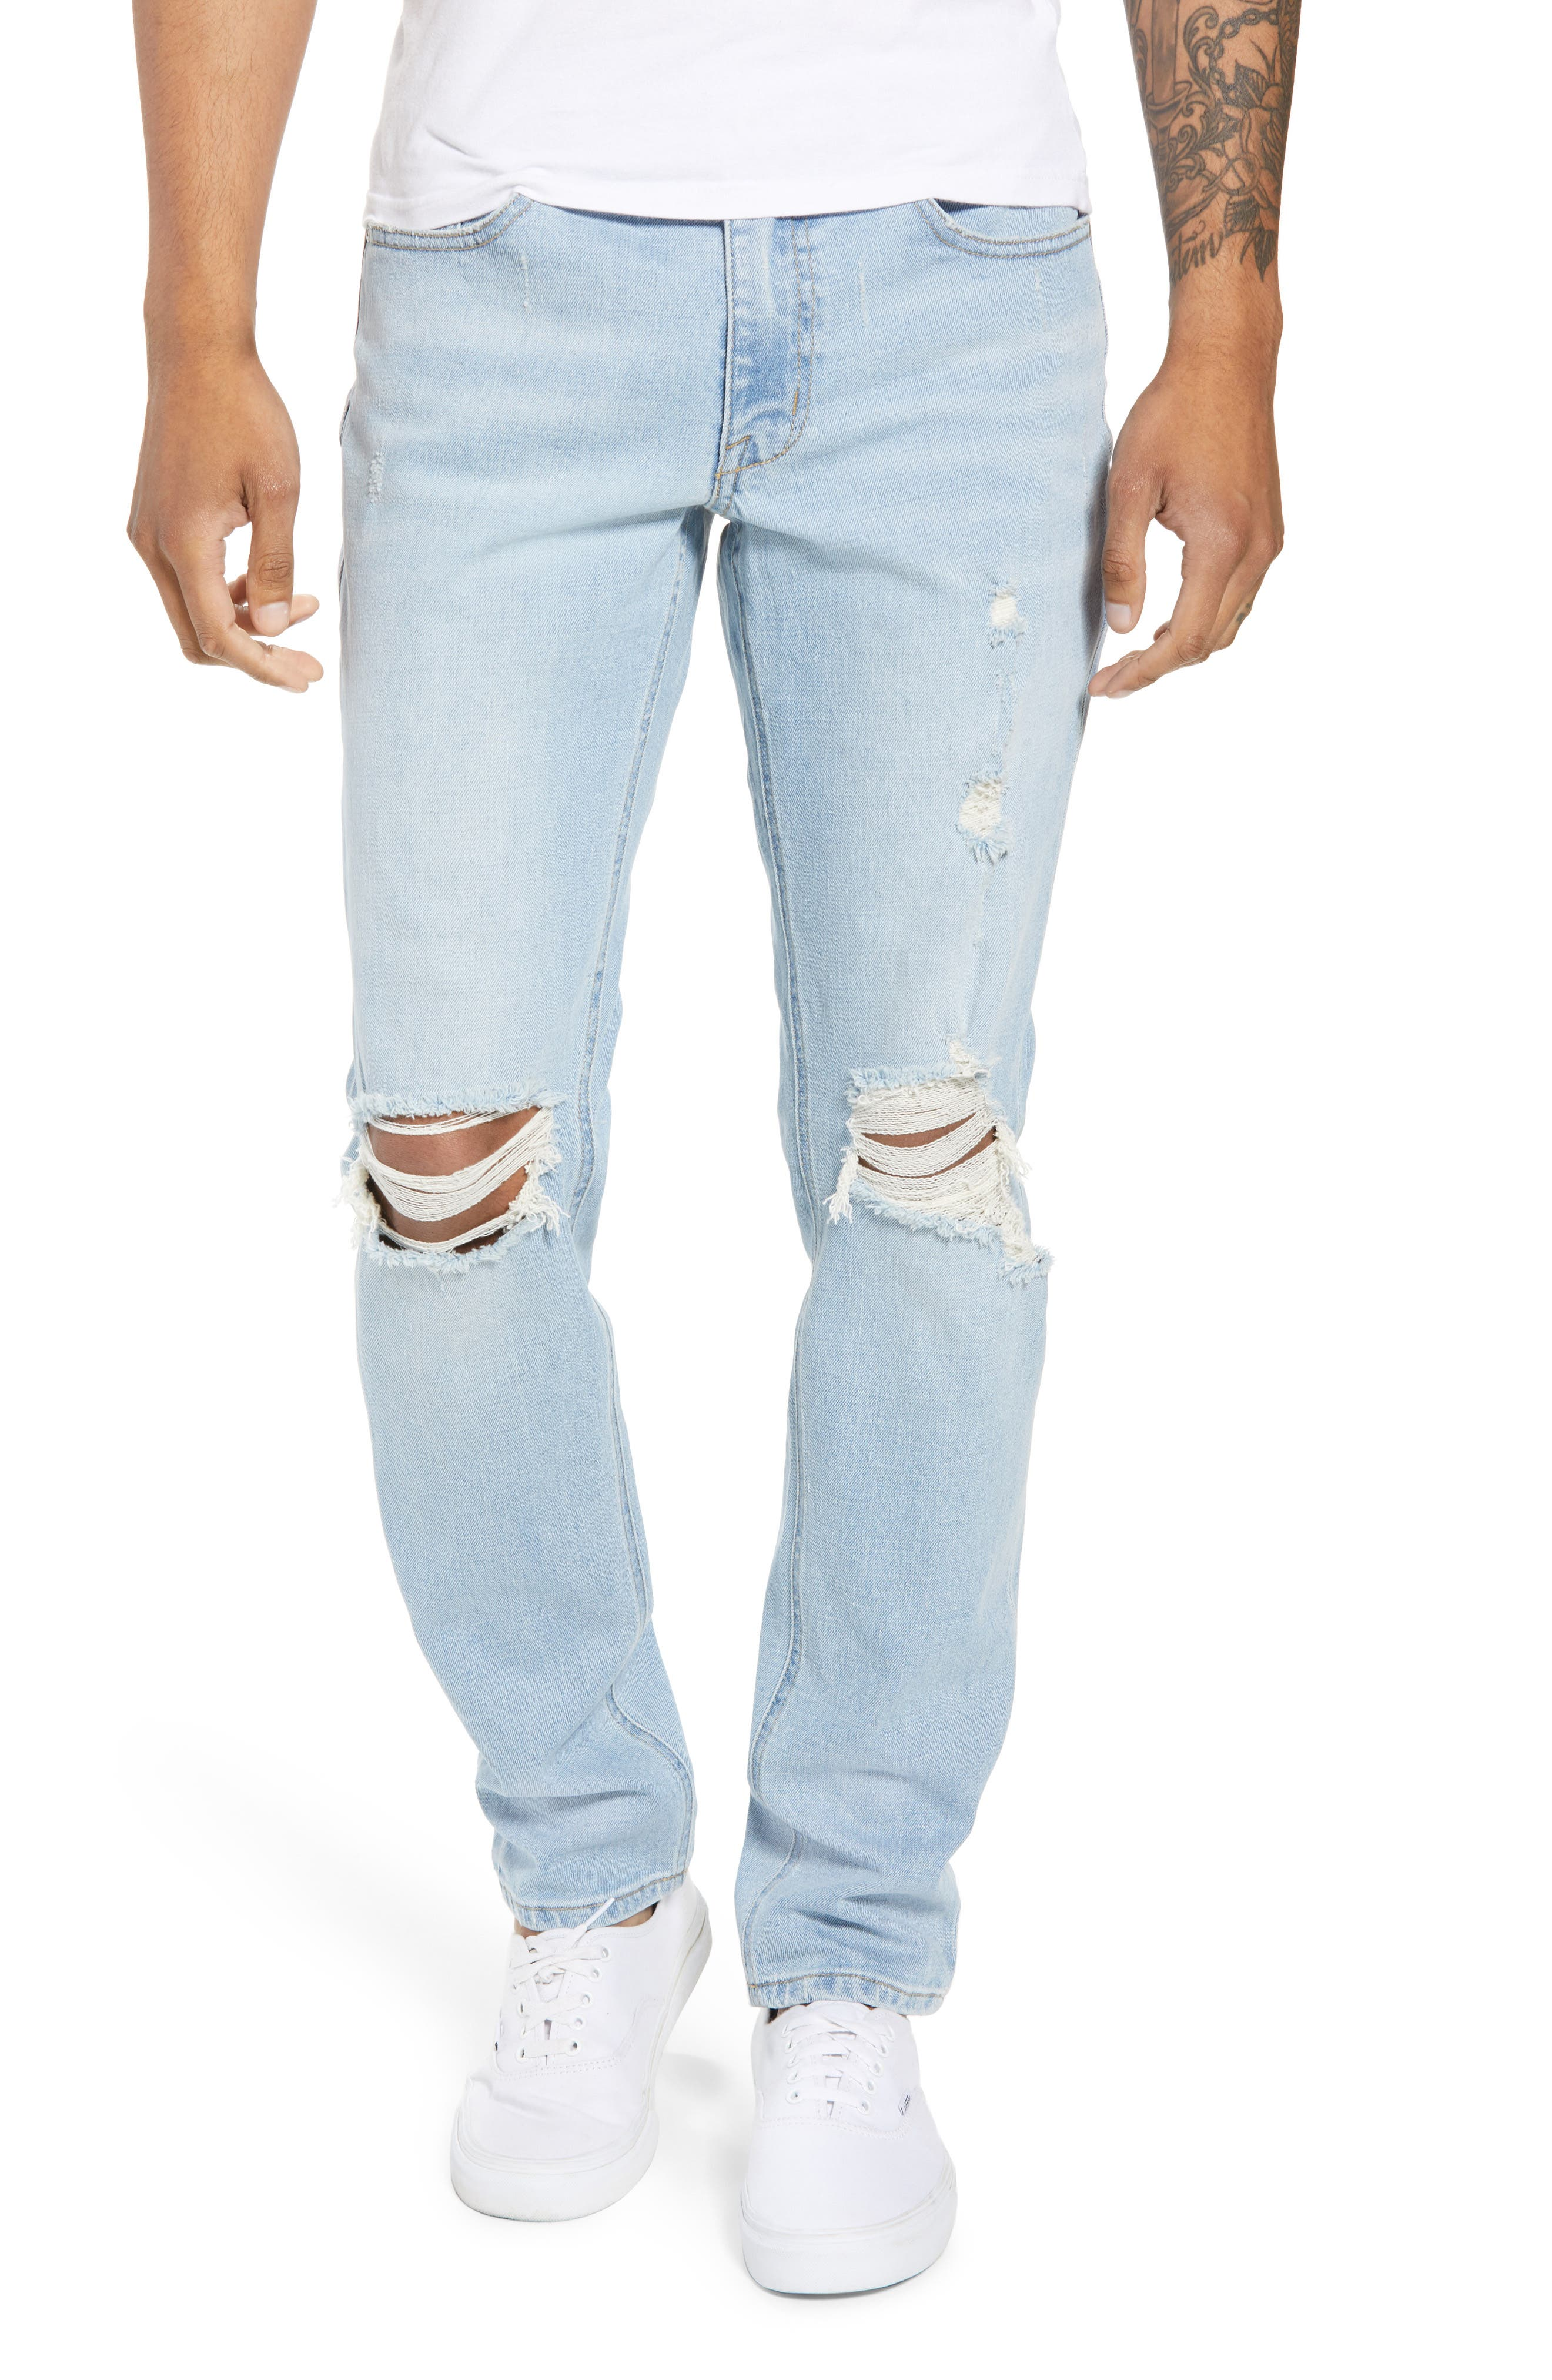 THE RAIL Ripped Skinny Jeans, Main, color, BLUE CORGAN WASH